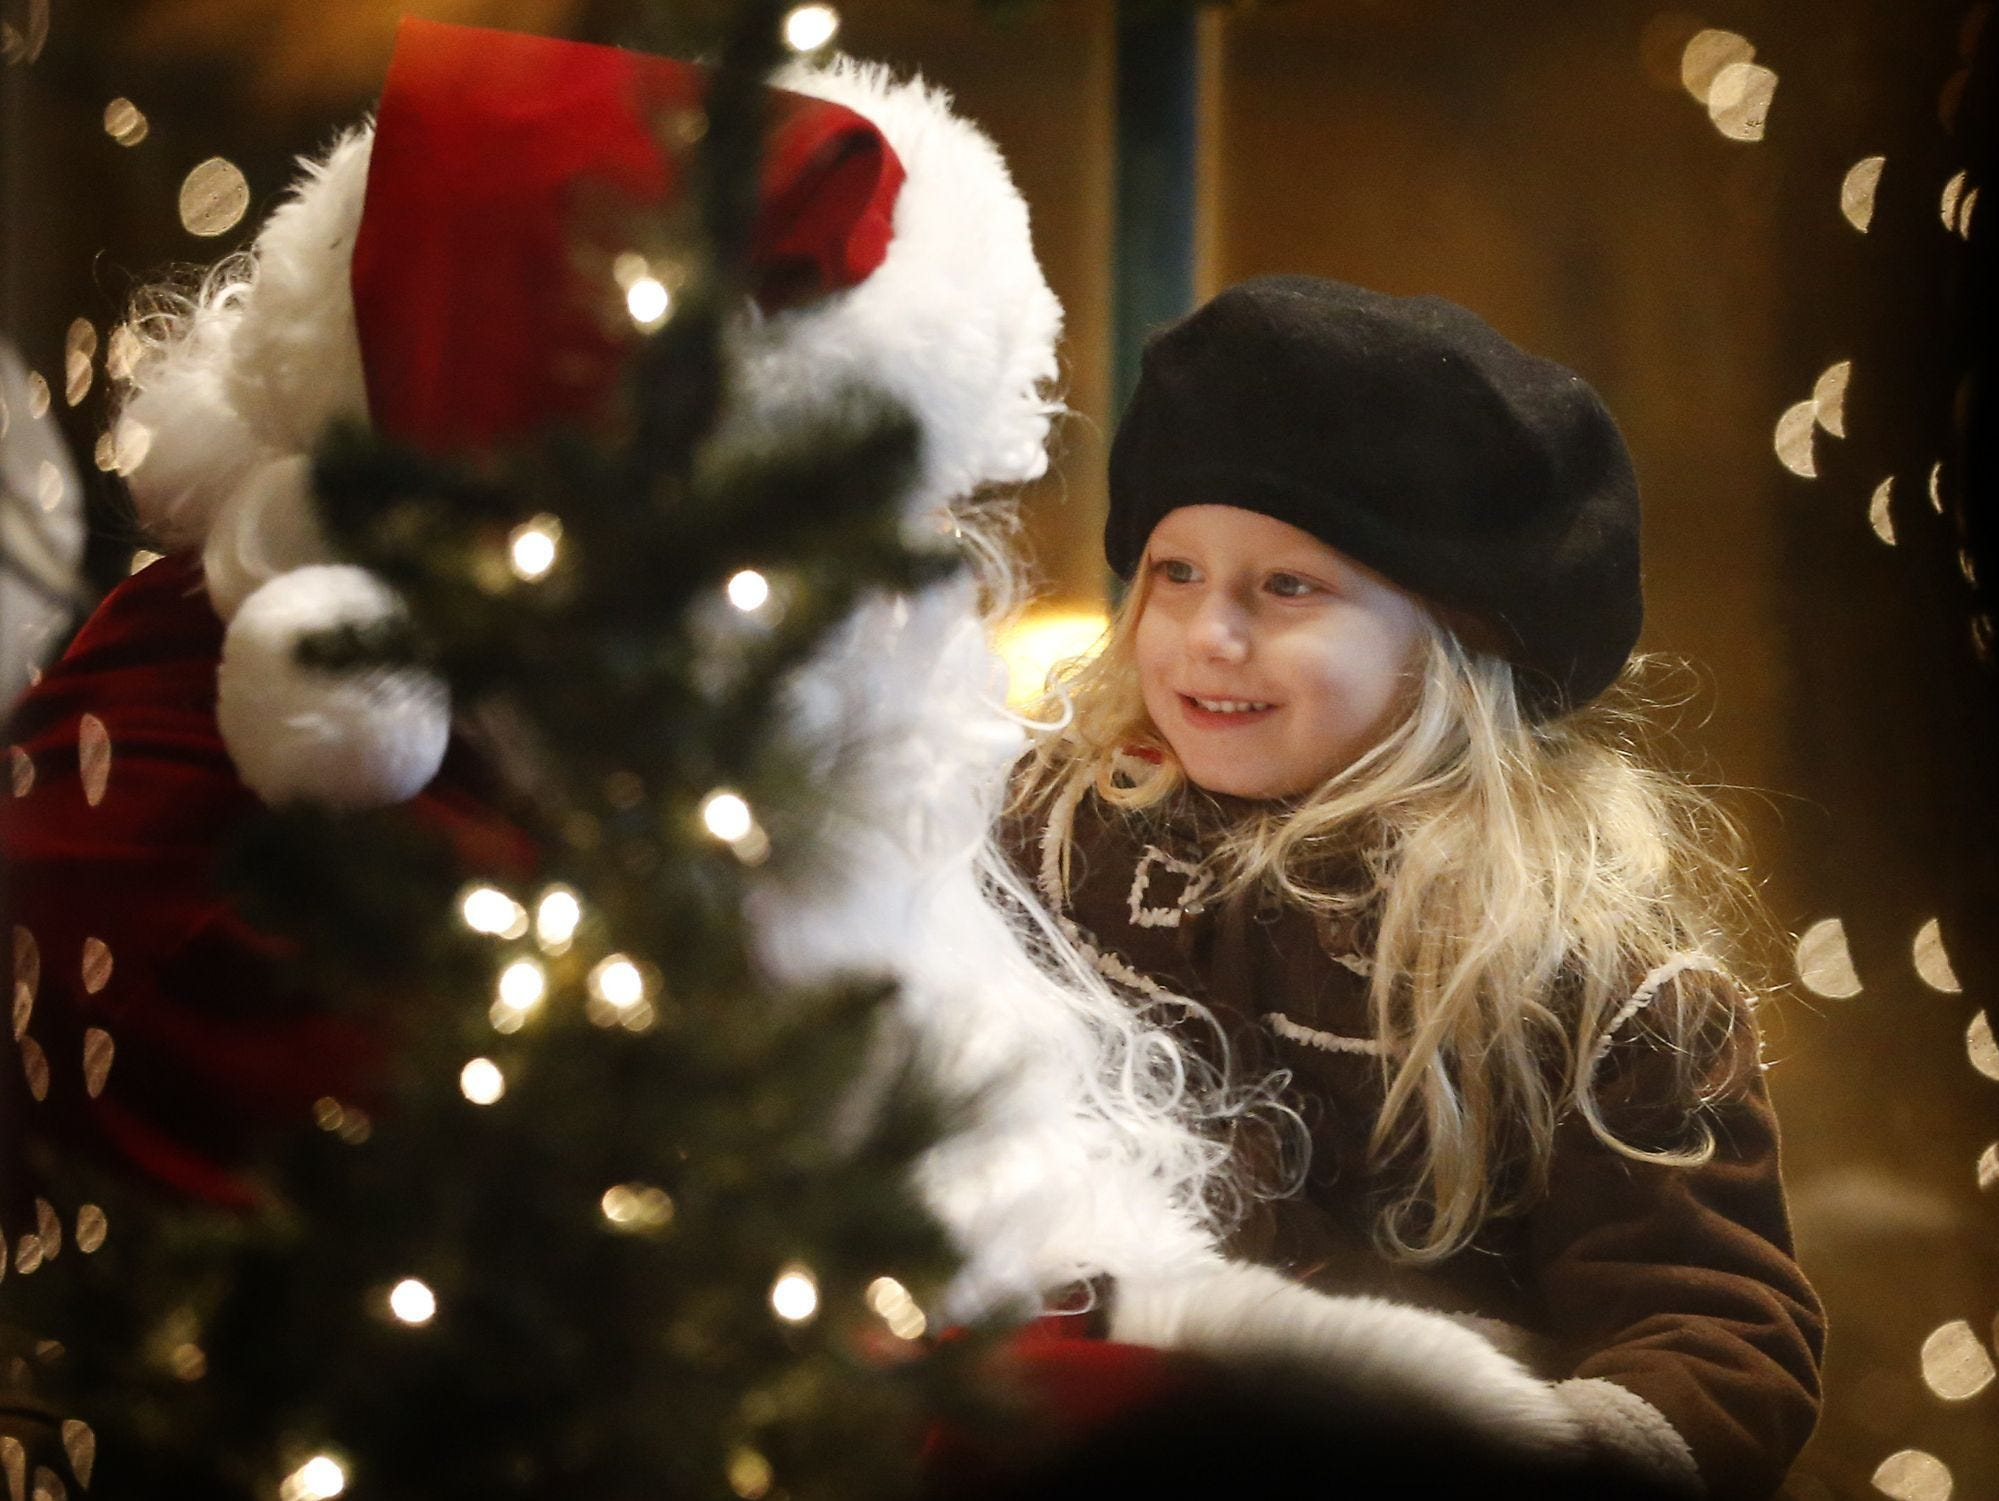 A child tells Santa what she would like for Christmas in the 2016 Sparkle event in Corning.